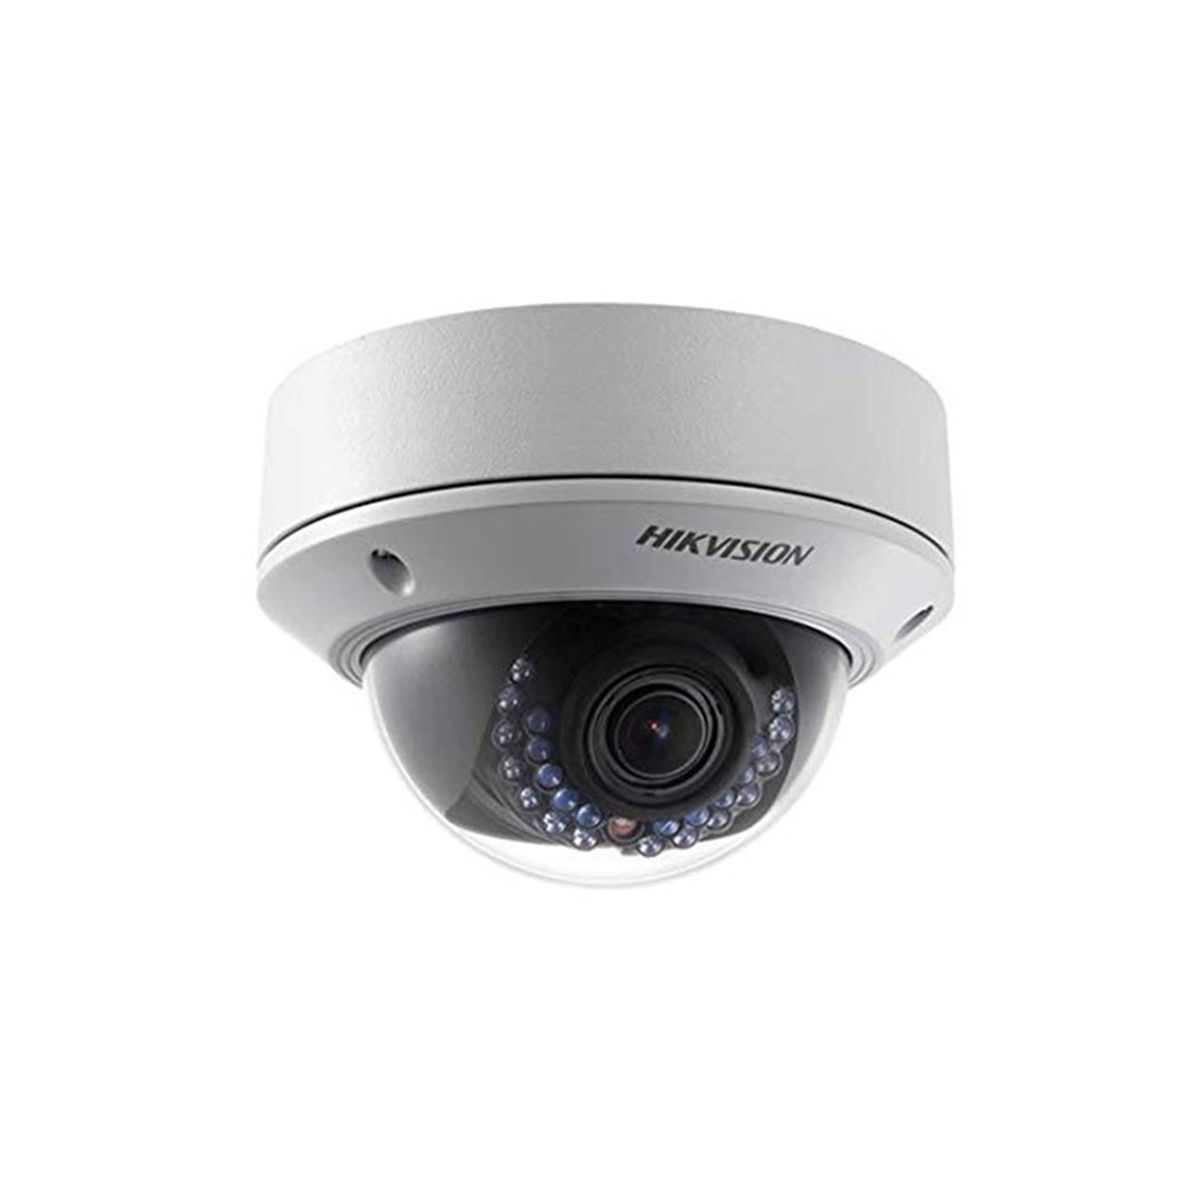 Cámara IP Domo Hikvision DS-2CD274FWD-I